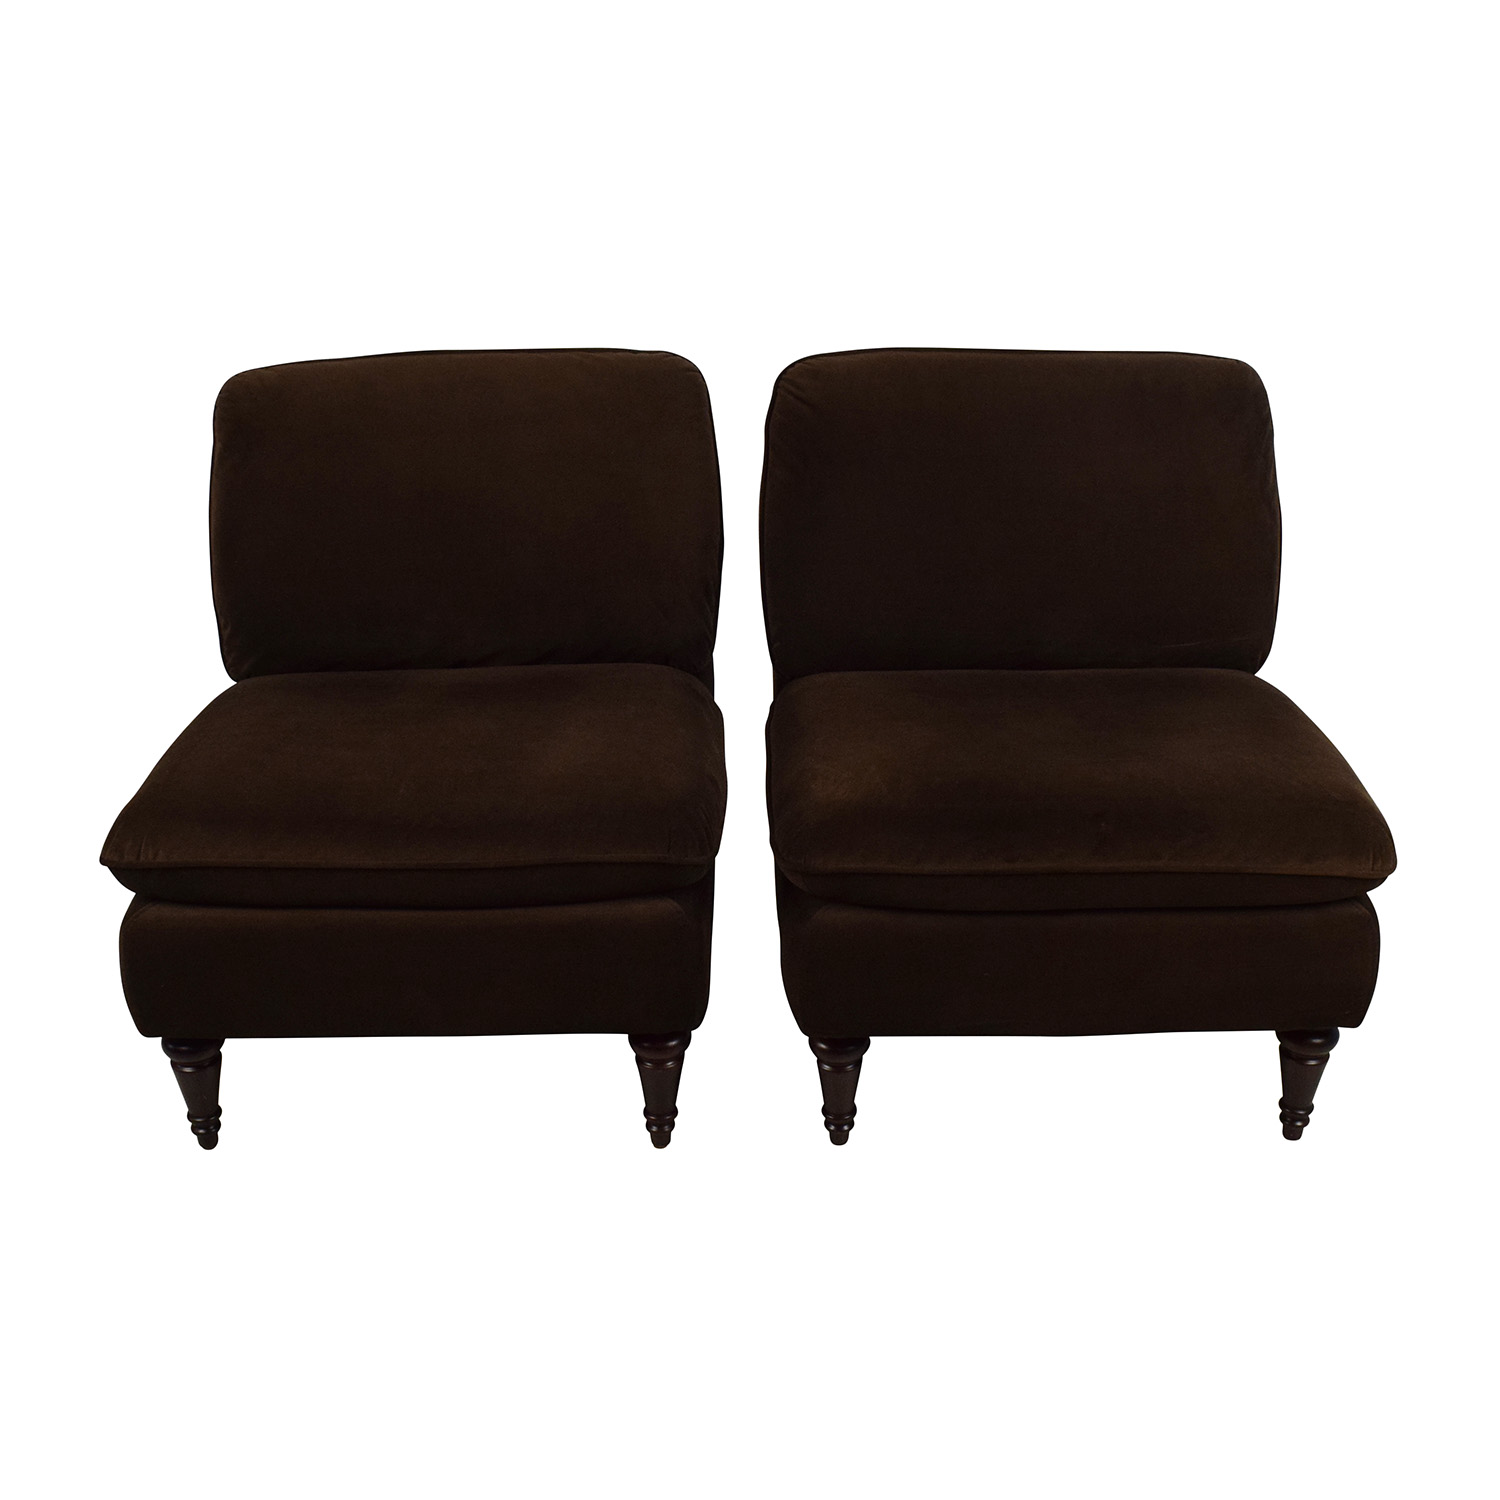 World Market Pair of Brown Velvet Chairs World Market